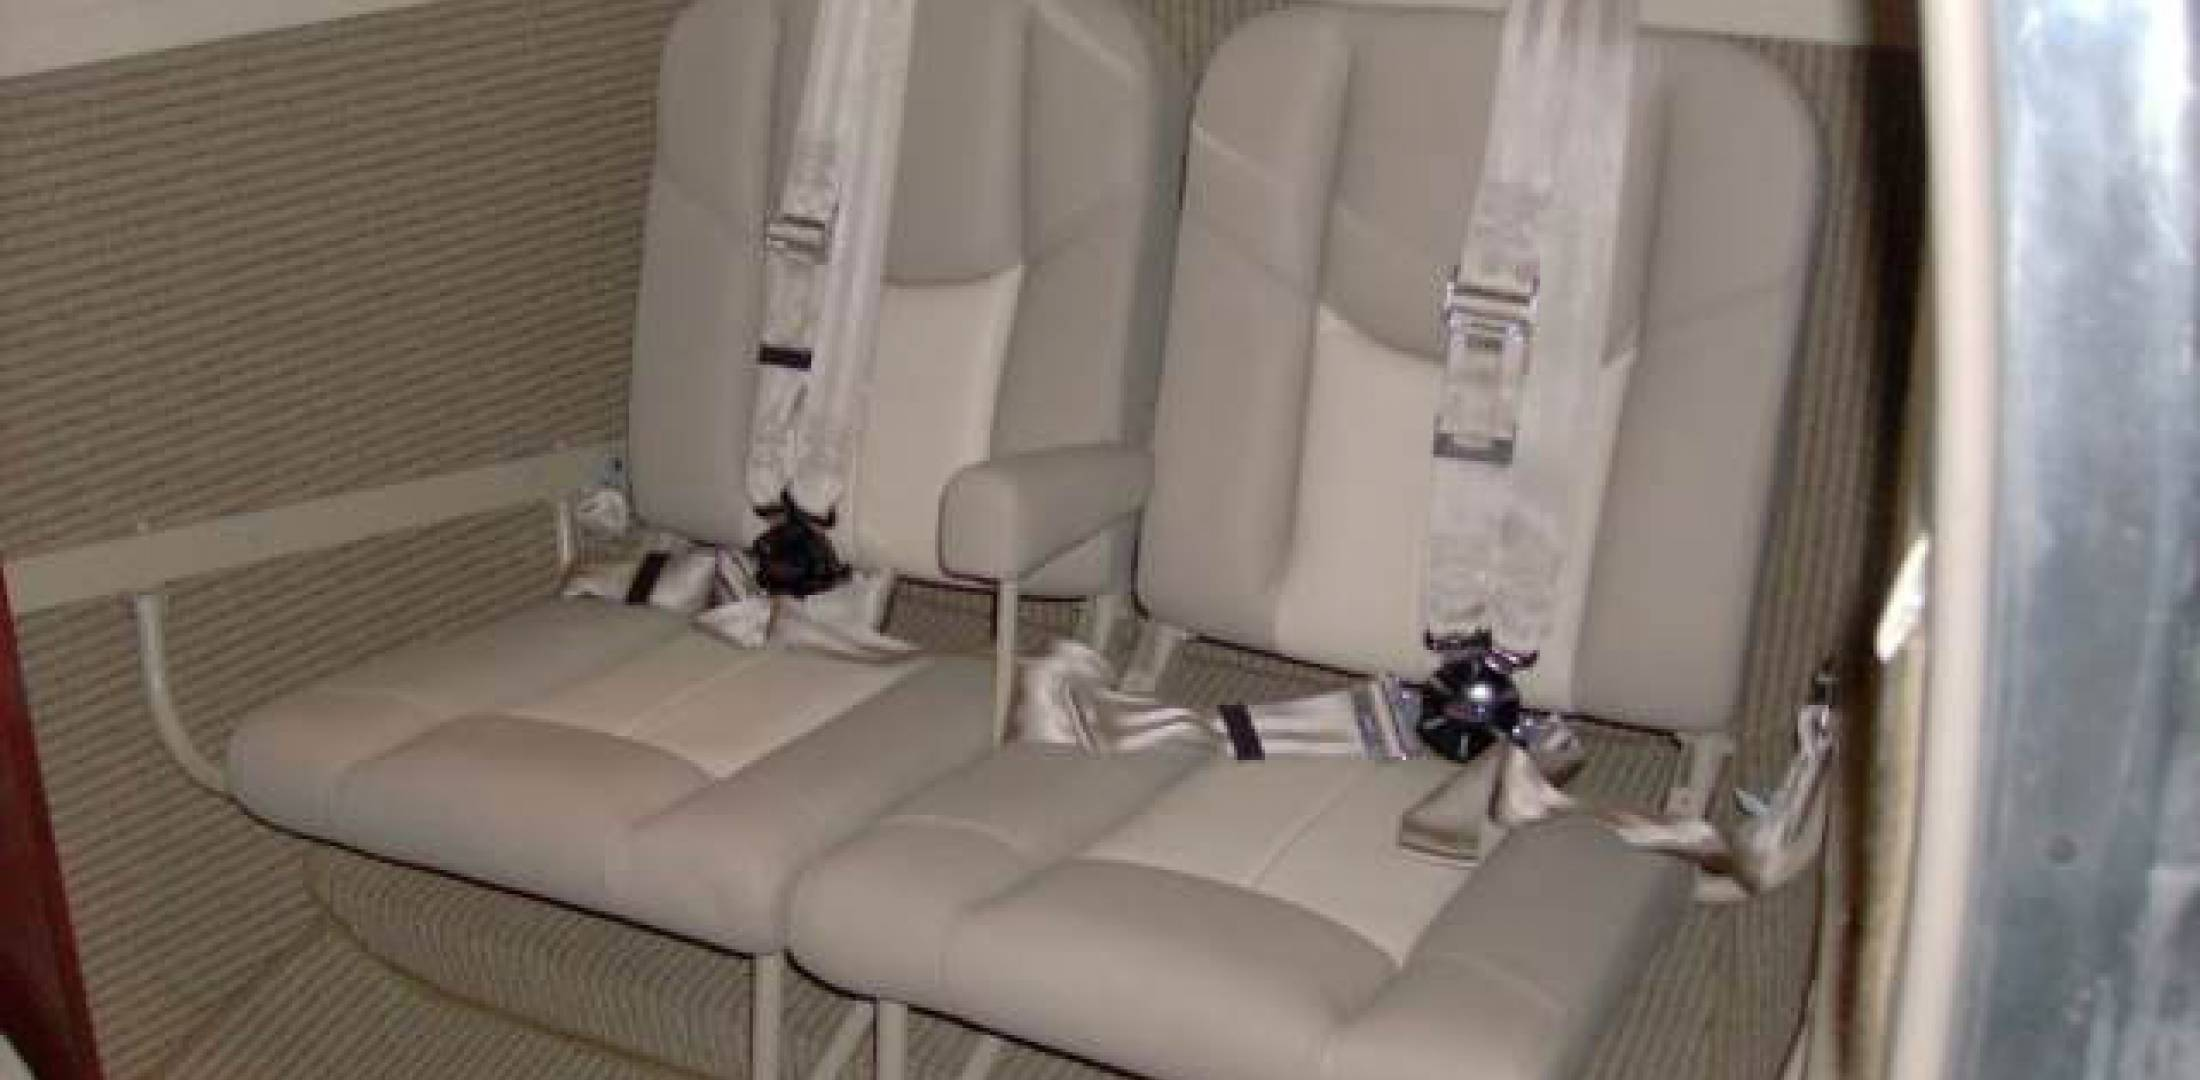 AvFab King Air jump seat